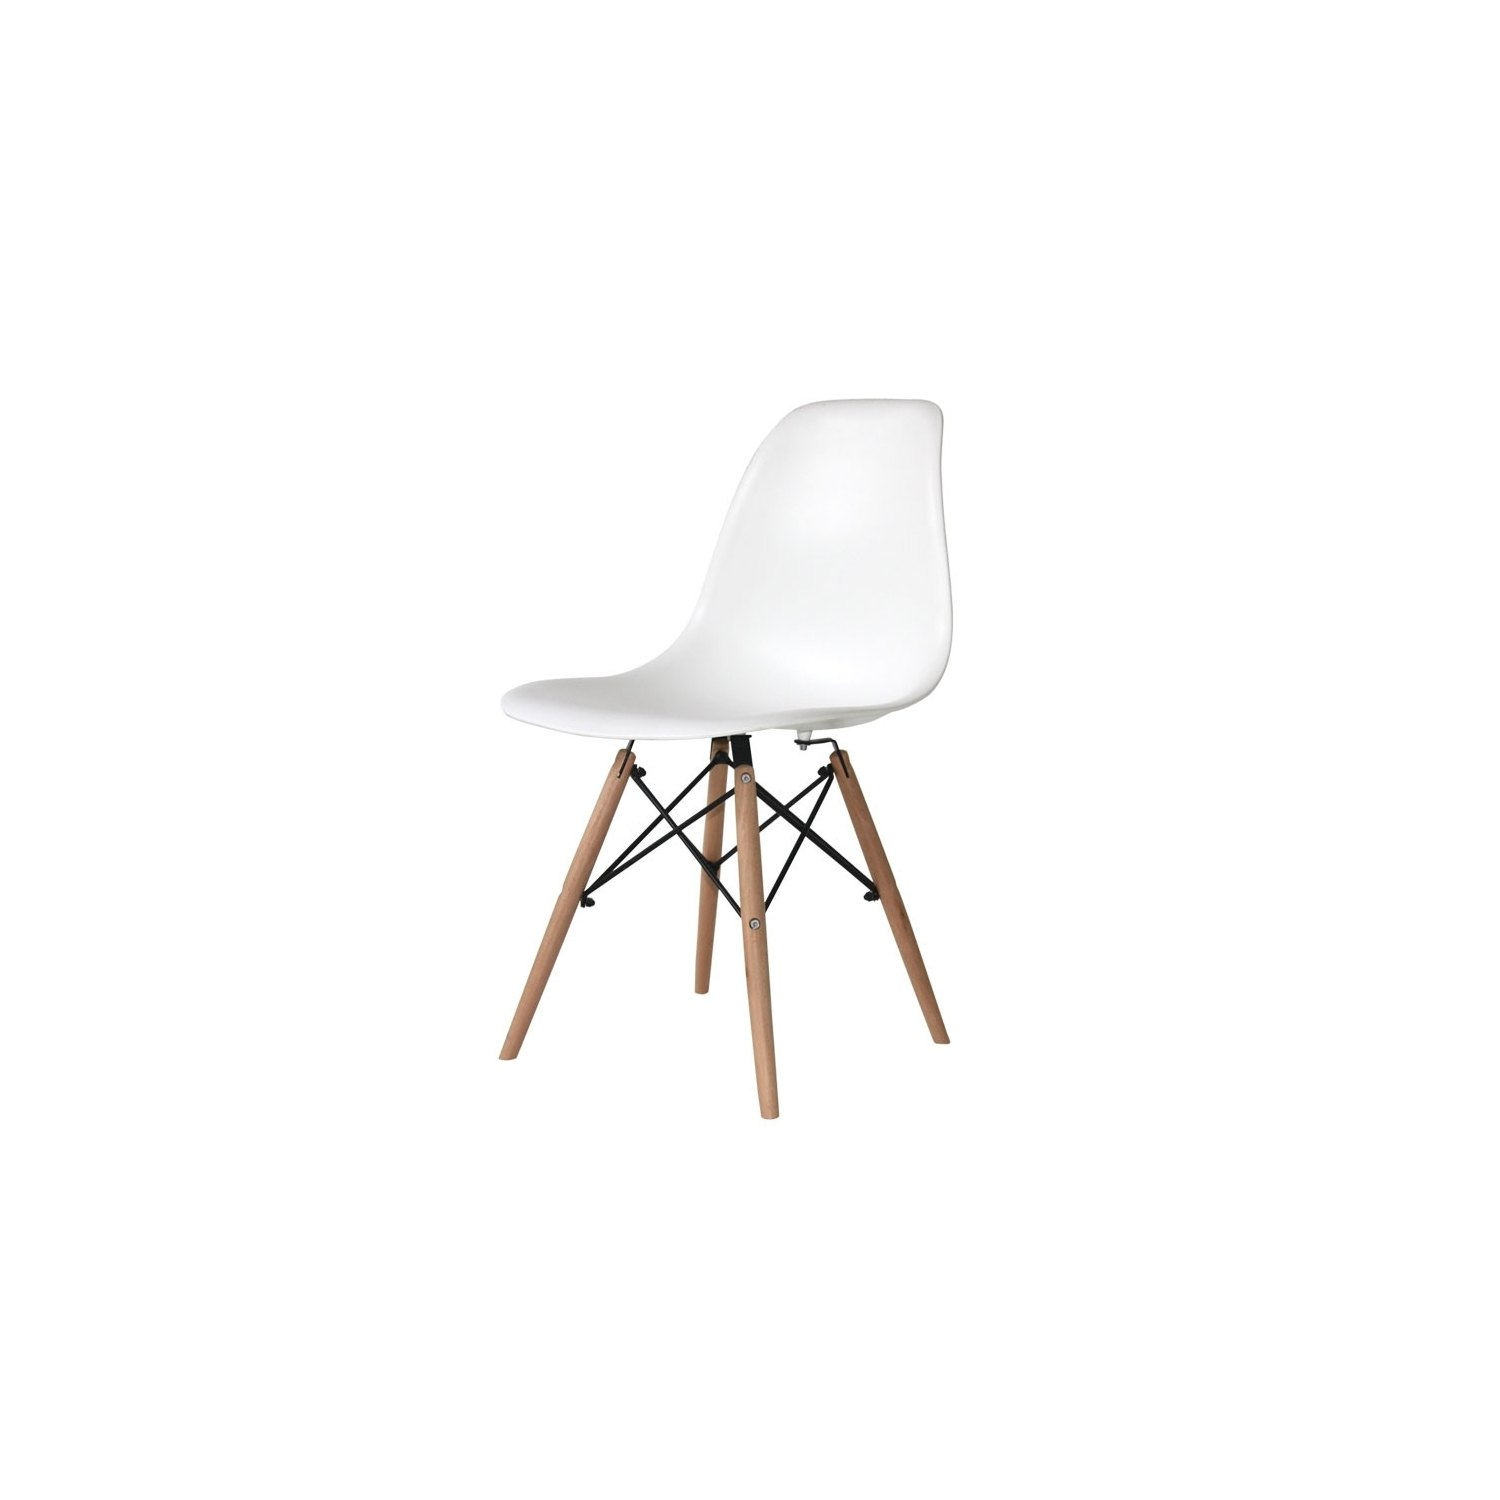 Pack mesa beech y 4 sillas tower wood blancas for Sillas de escritorio blancas